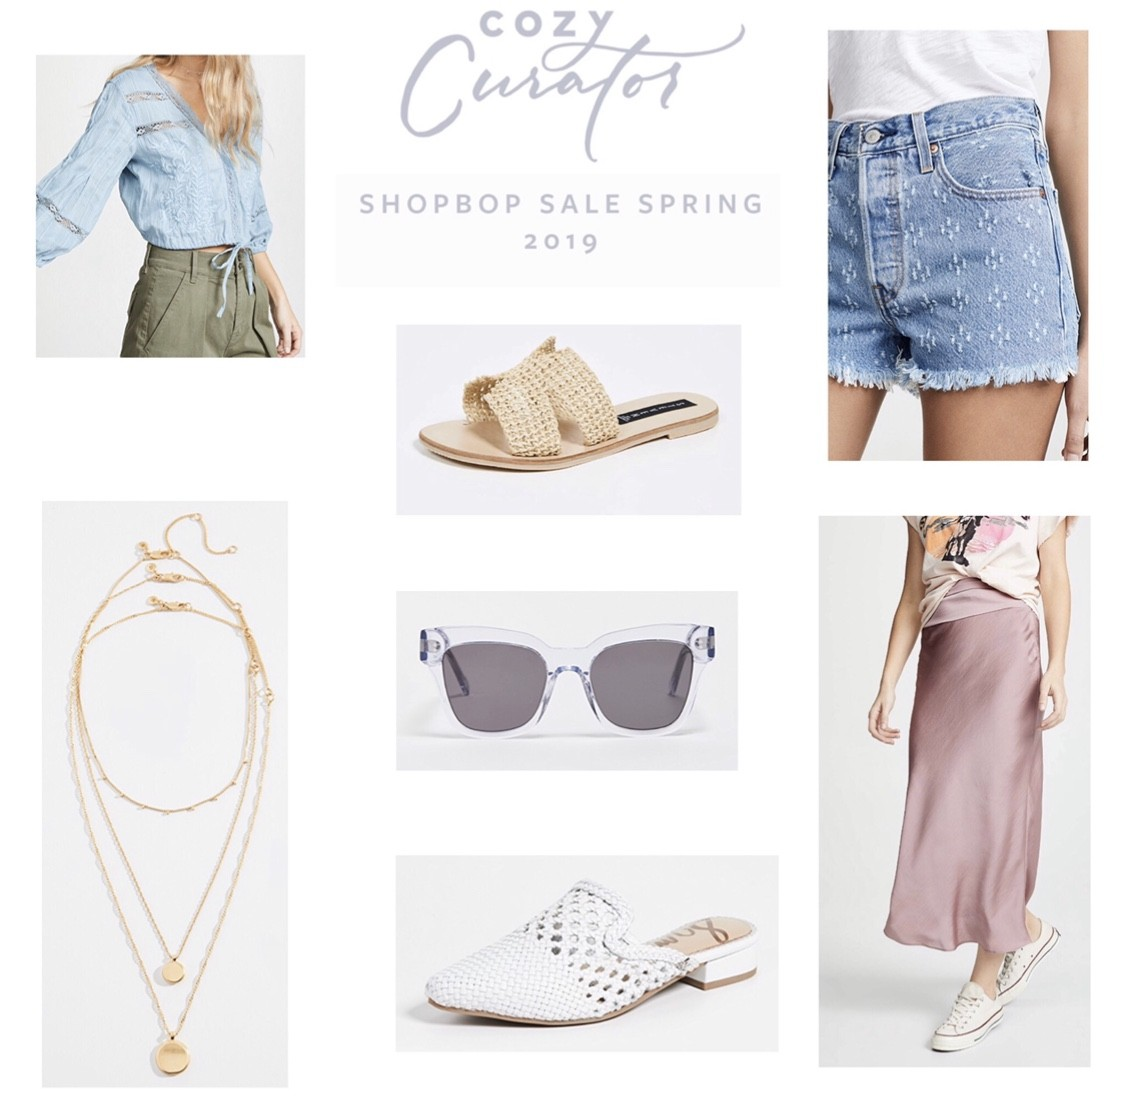 ae6815fc2c2 Shopbop s big sale is here and its the perfect time to stock up on  Spring Summer wardrobe pieces! I know that the items that Shopbop carries  can be pricier ...